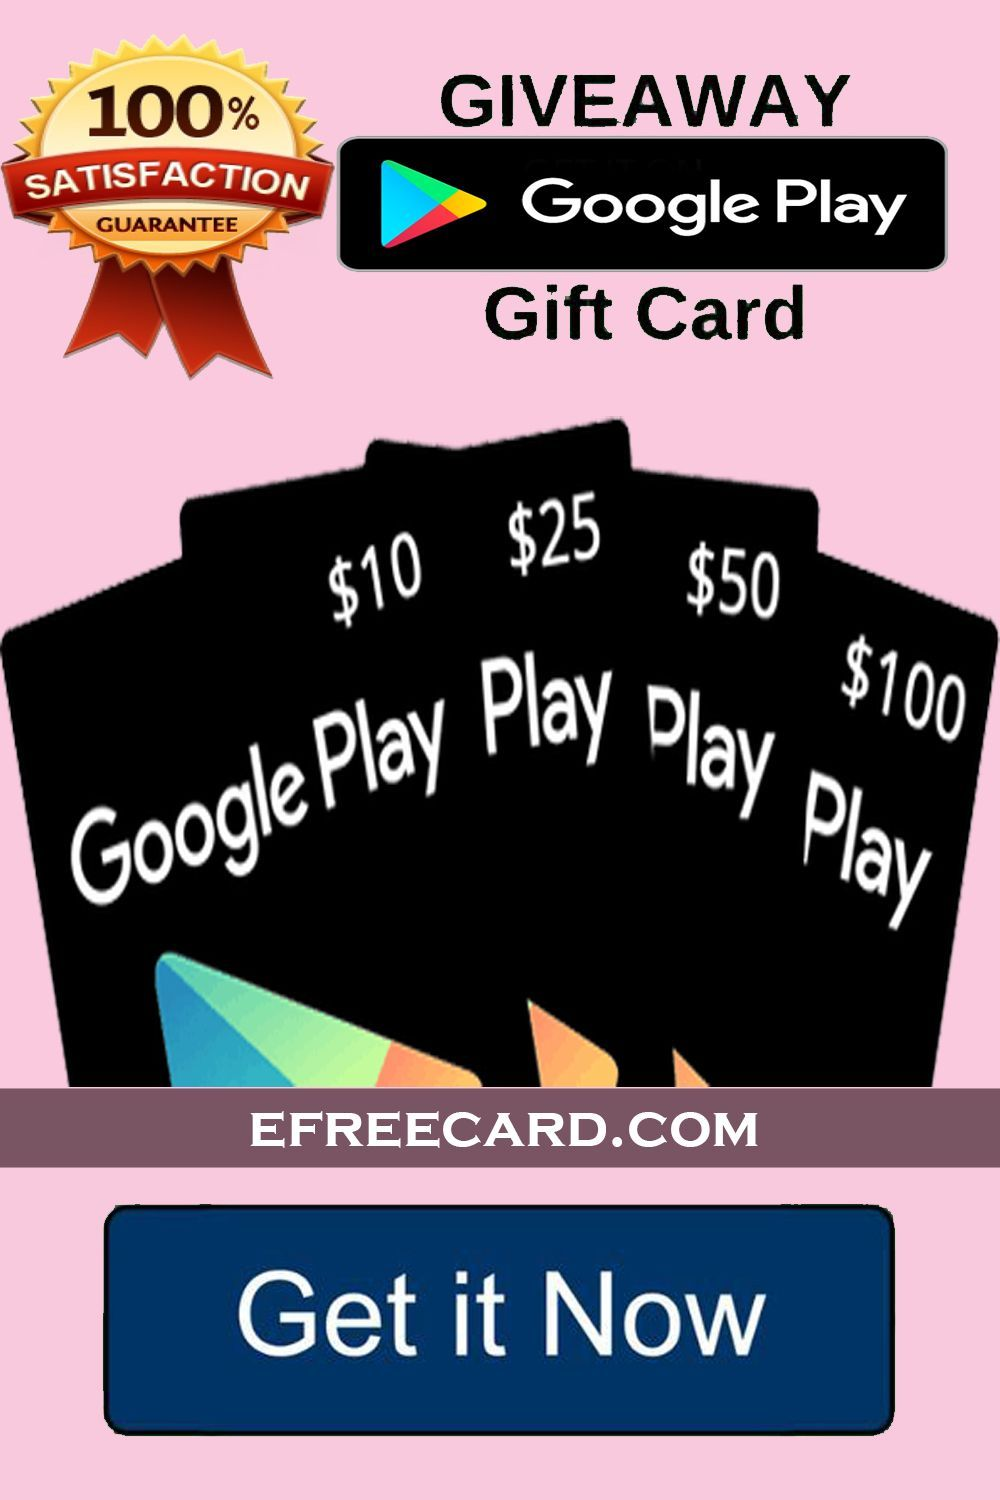 Redeem Code for Playstore Win Playstore gift card free